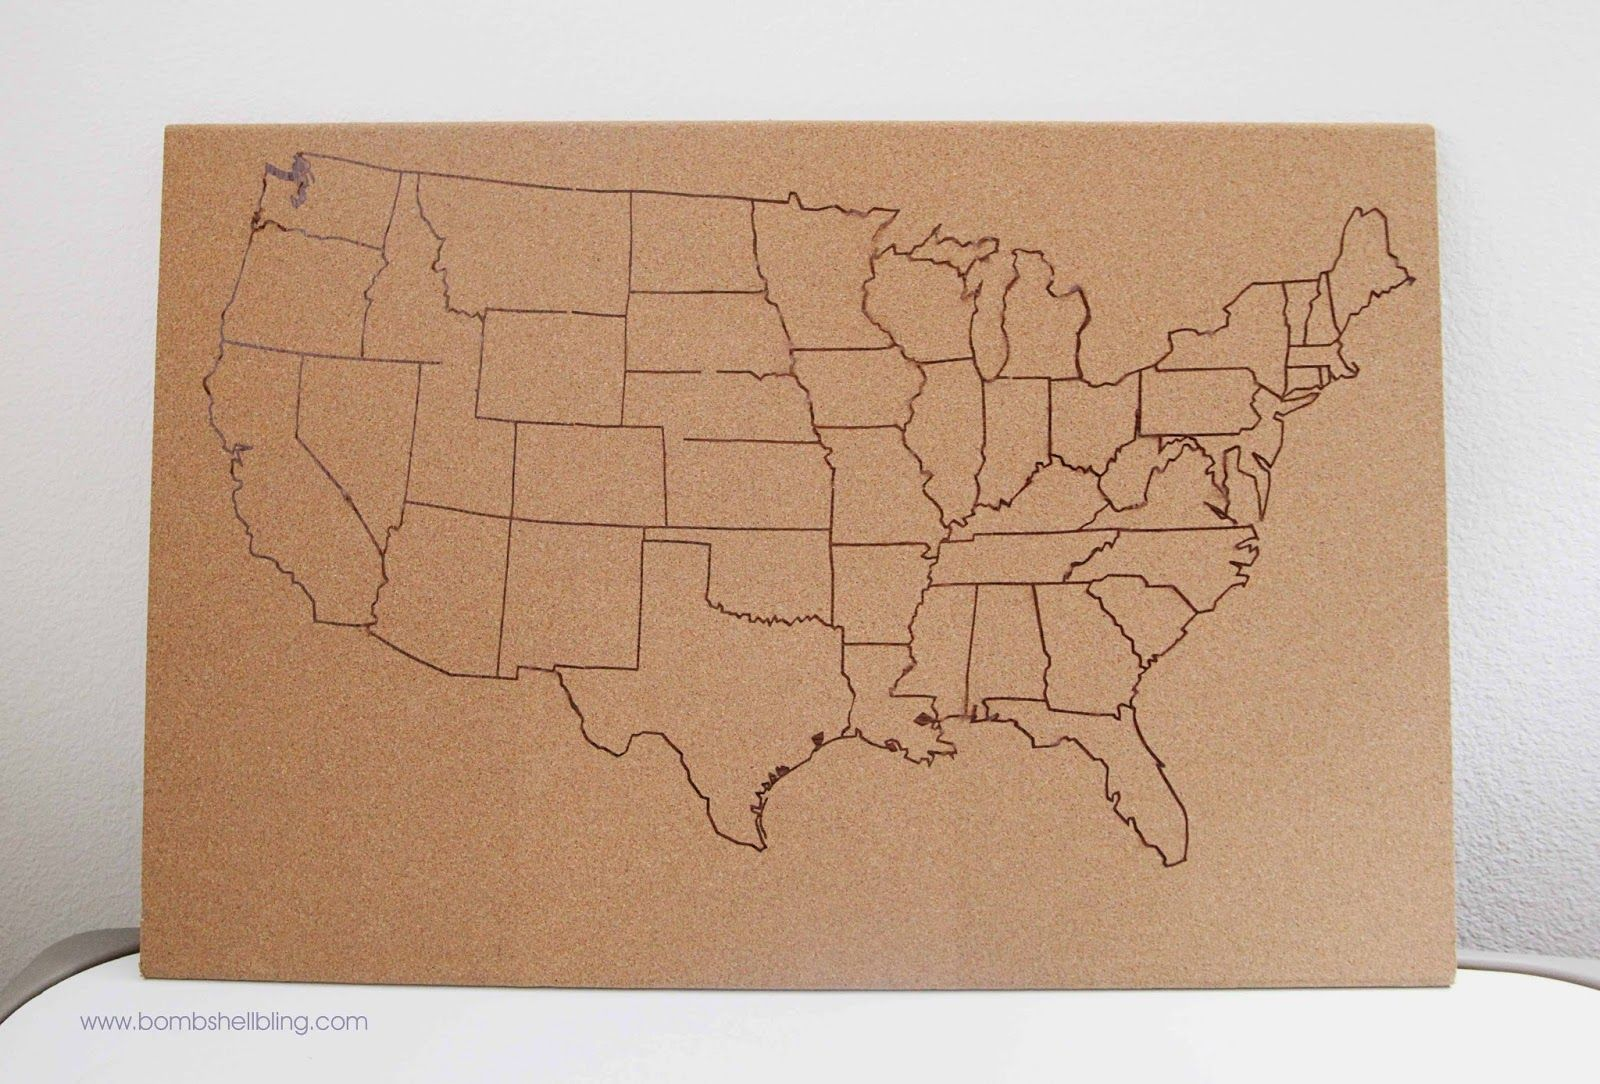 Us Map On Cork Board.Usa Cork Board Map Crafty Cork Board Map Diy Cork Board Cork